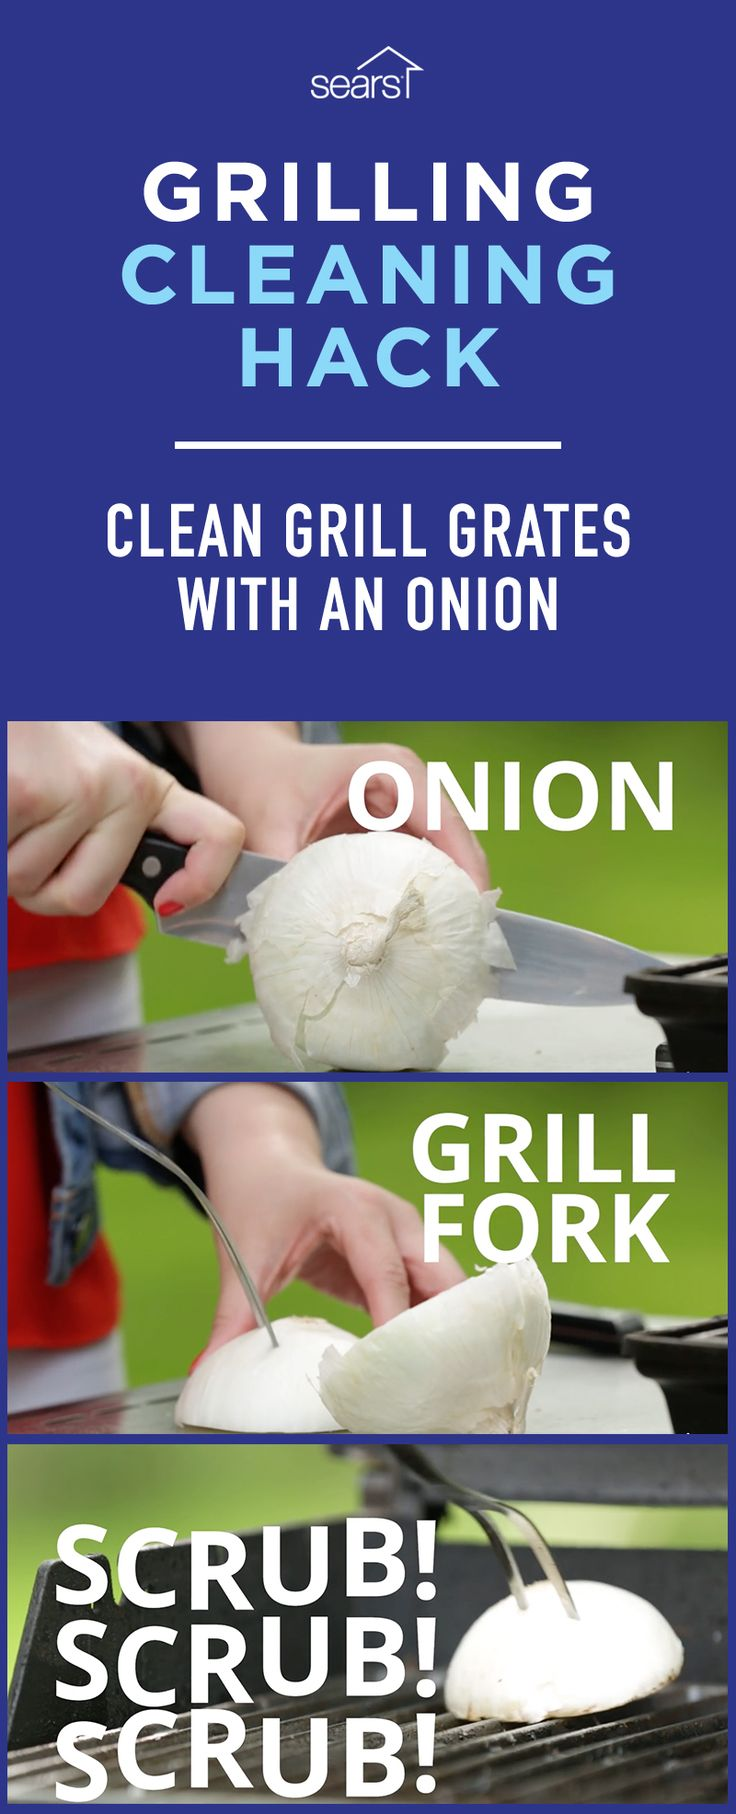 Grill Cleaning Hacks — Tested! We've test the popular grill cleaning hack of cleaning grill grates with an onion. To clean dirty grill grates with an onion follow these steps: Cut an onion in half, stick it with a grill fork and scrub grill grates while they're hot. Have you tried this grill cleaning hack? Visit the Sears Home Services Knowledge Center to watch the video and find out if this hack, and more grill cleaning hacks, actually work!